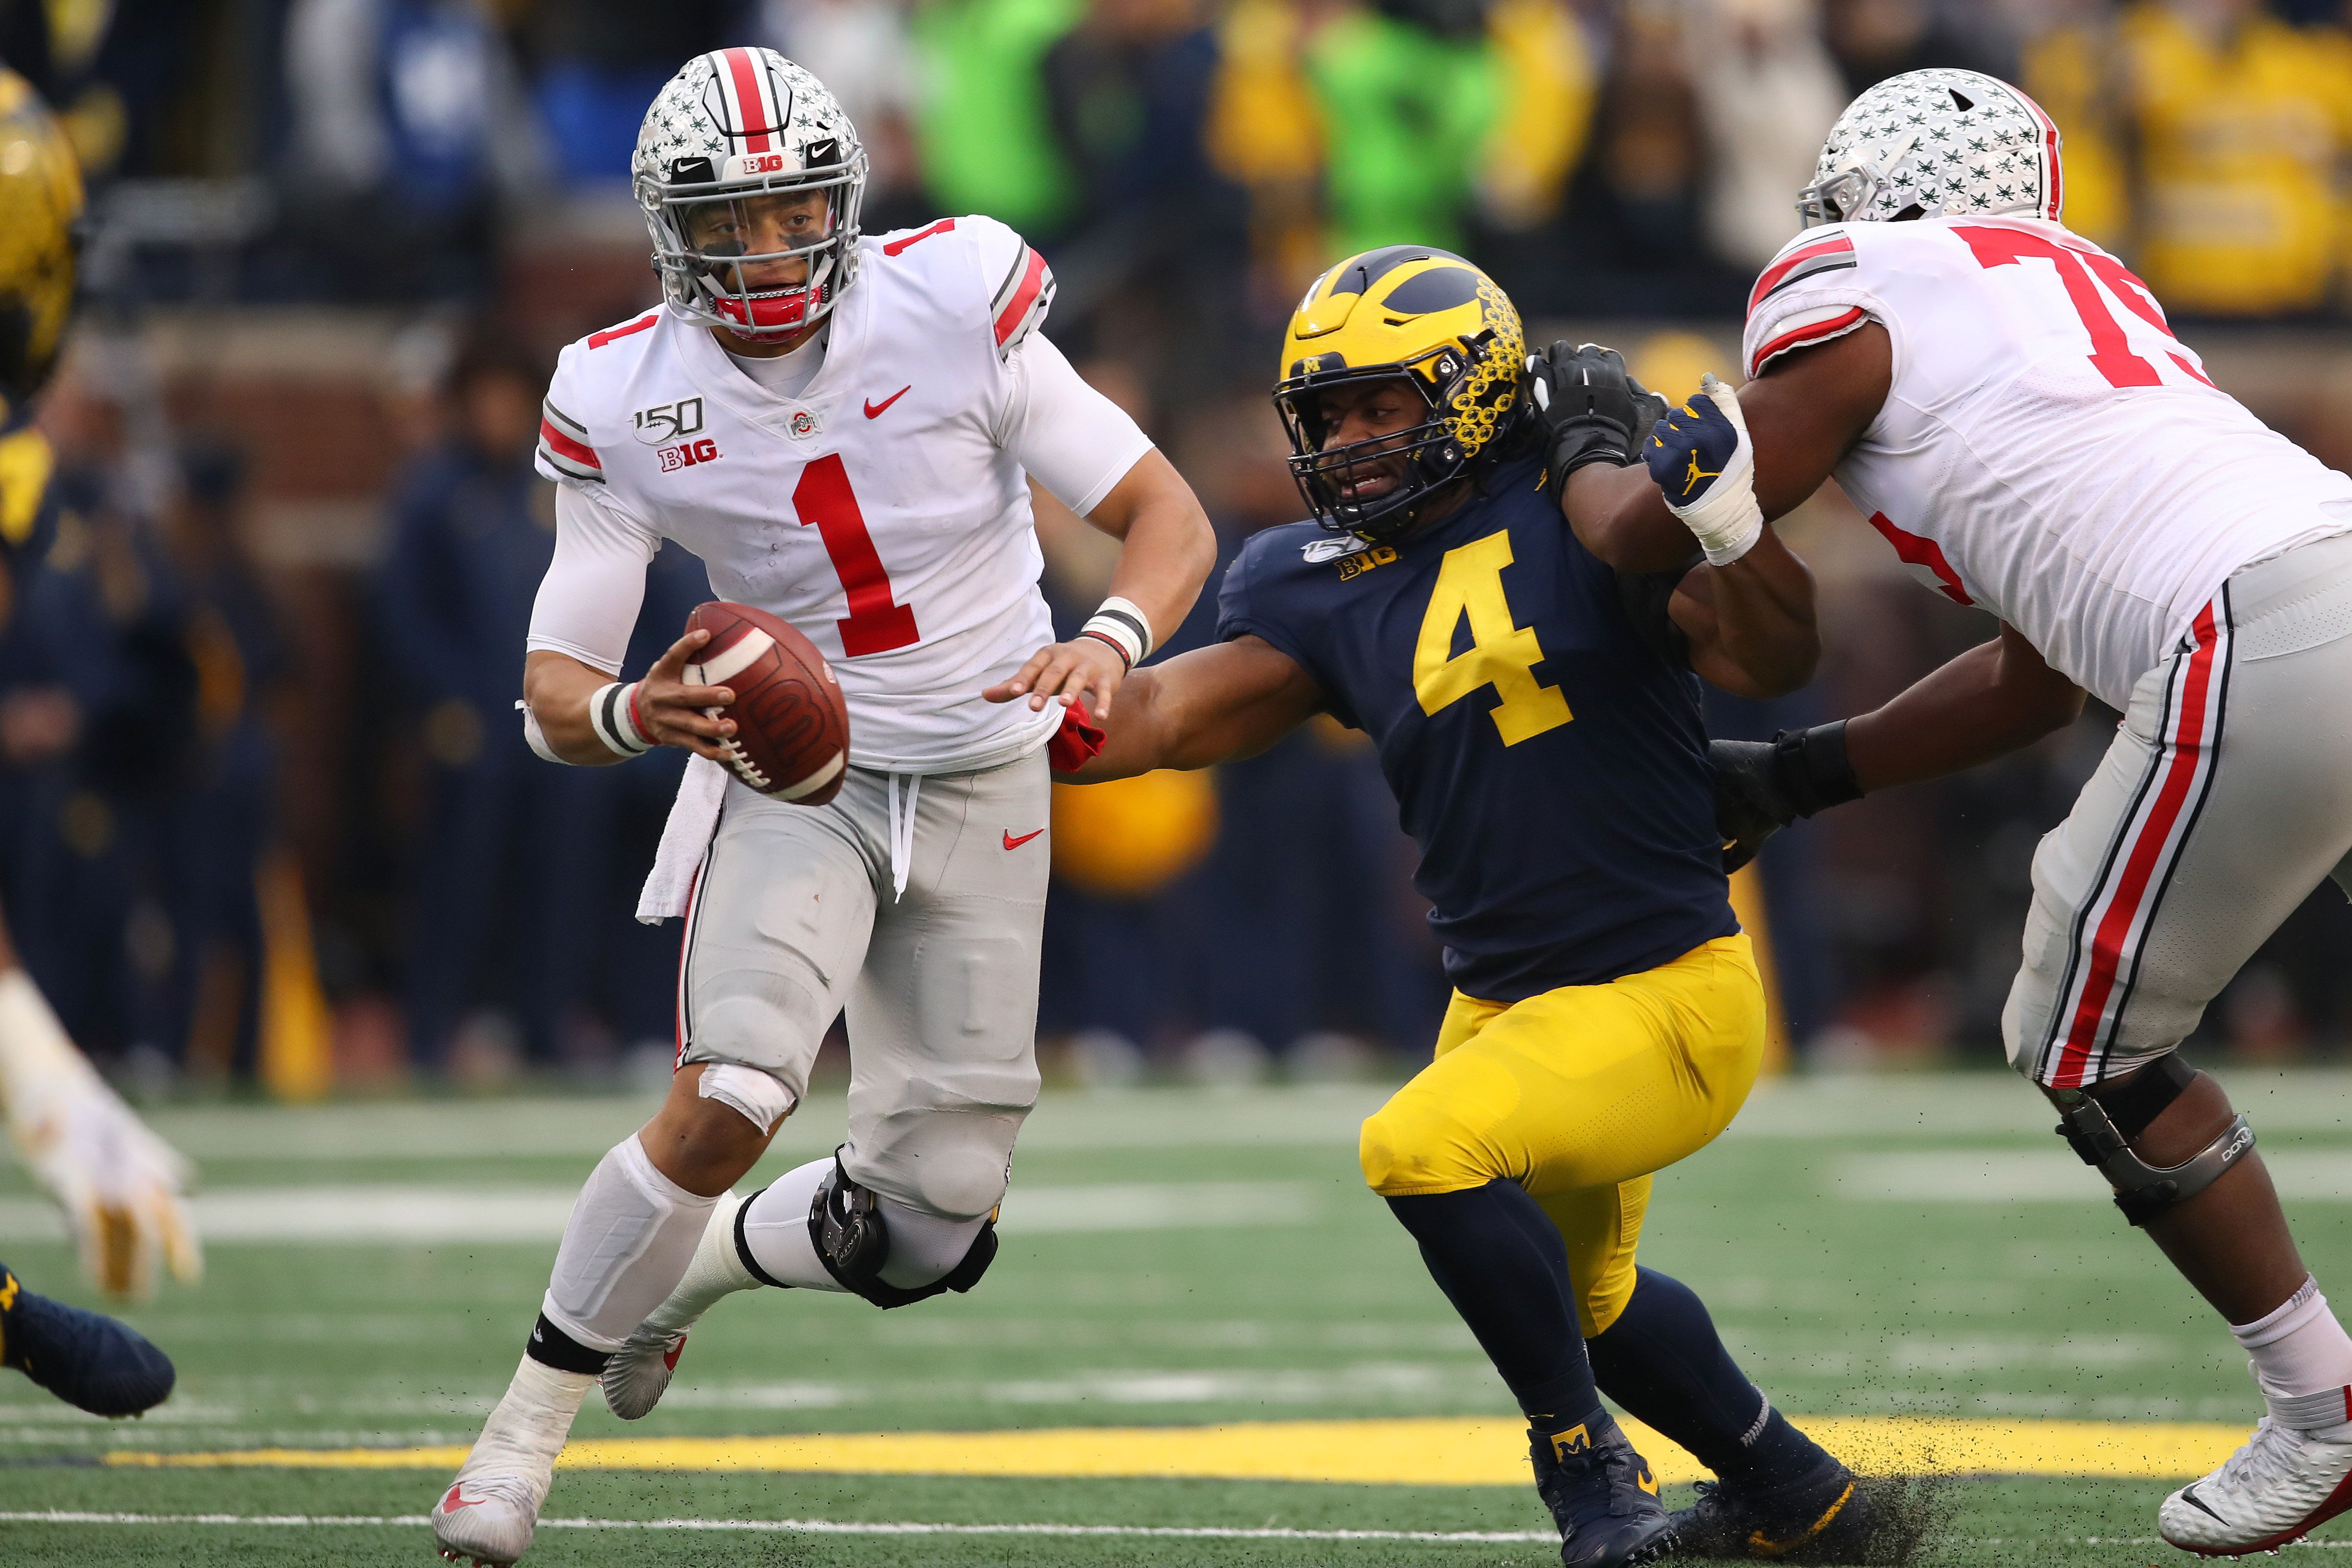 Justin Fields Has 'Heisman Moment' in Ohio State's Win